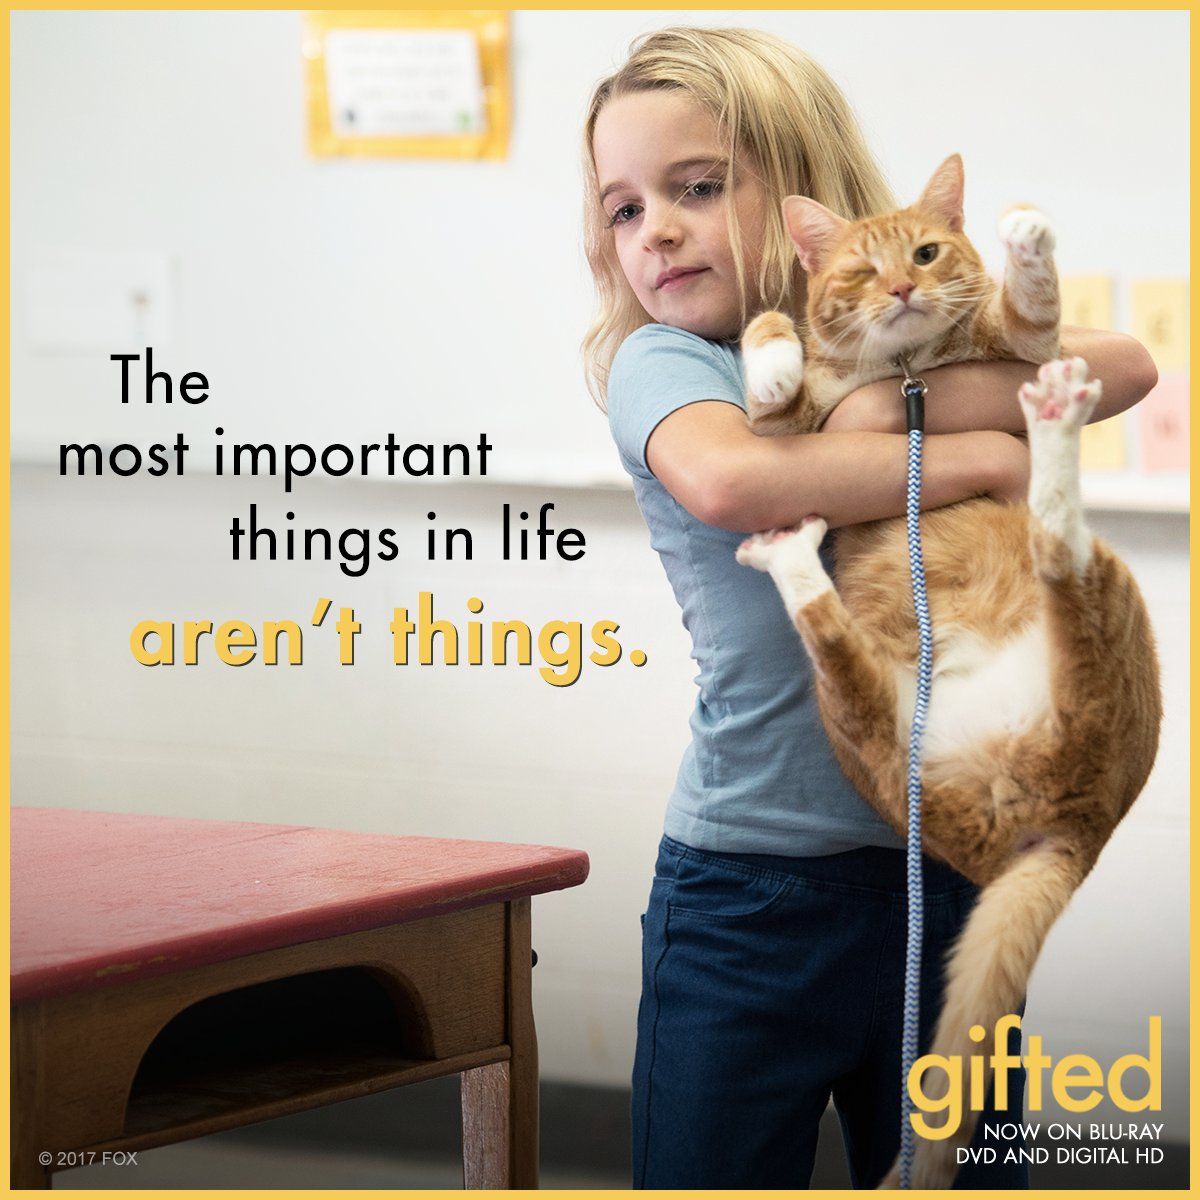 Gifted Movie On Twitter Life Is Better When You Share It With The Ones You Love Watch Giftedmovie Tonight Https T Co 2ez1fihfgj